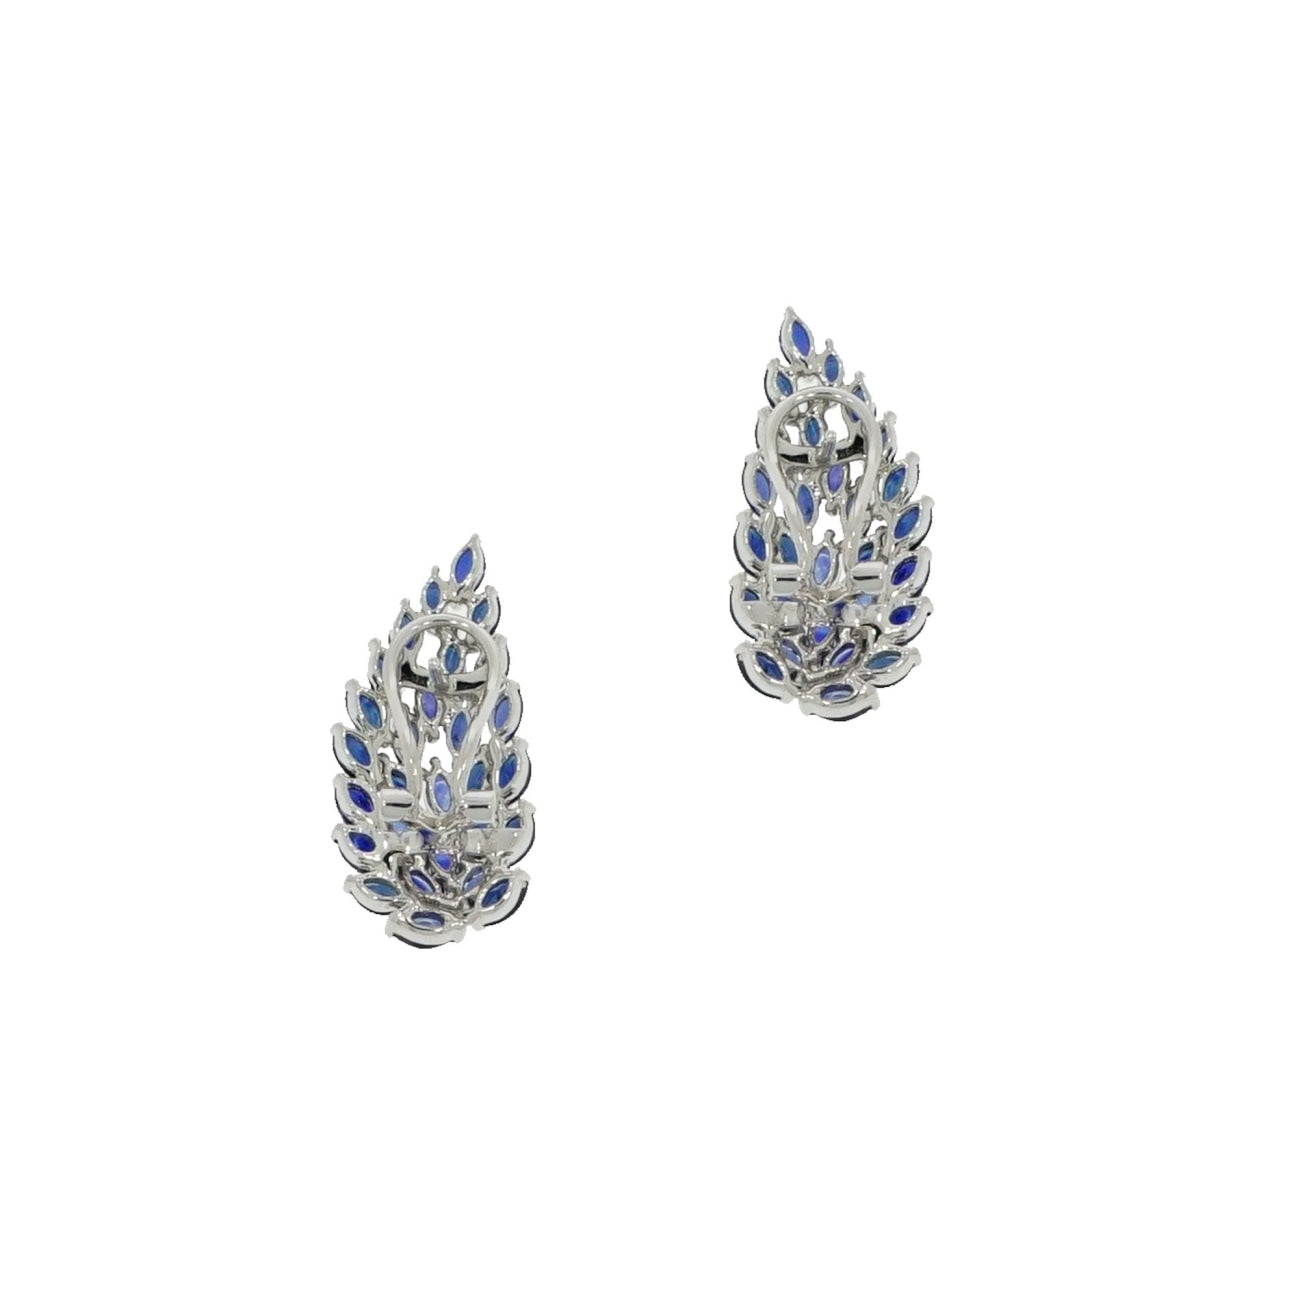 Estate Jewelry Estate Jewelry - Sapphires Climbers White Gold Earrings | Manfredi Jewels